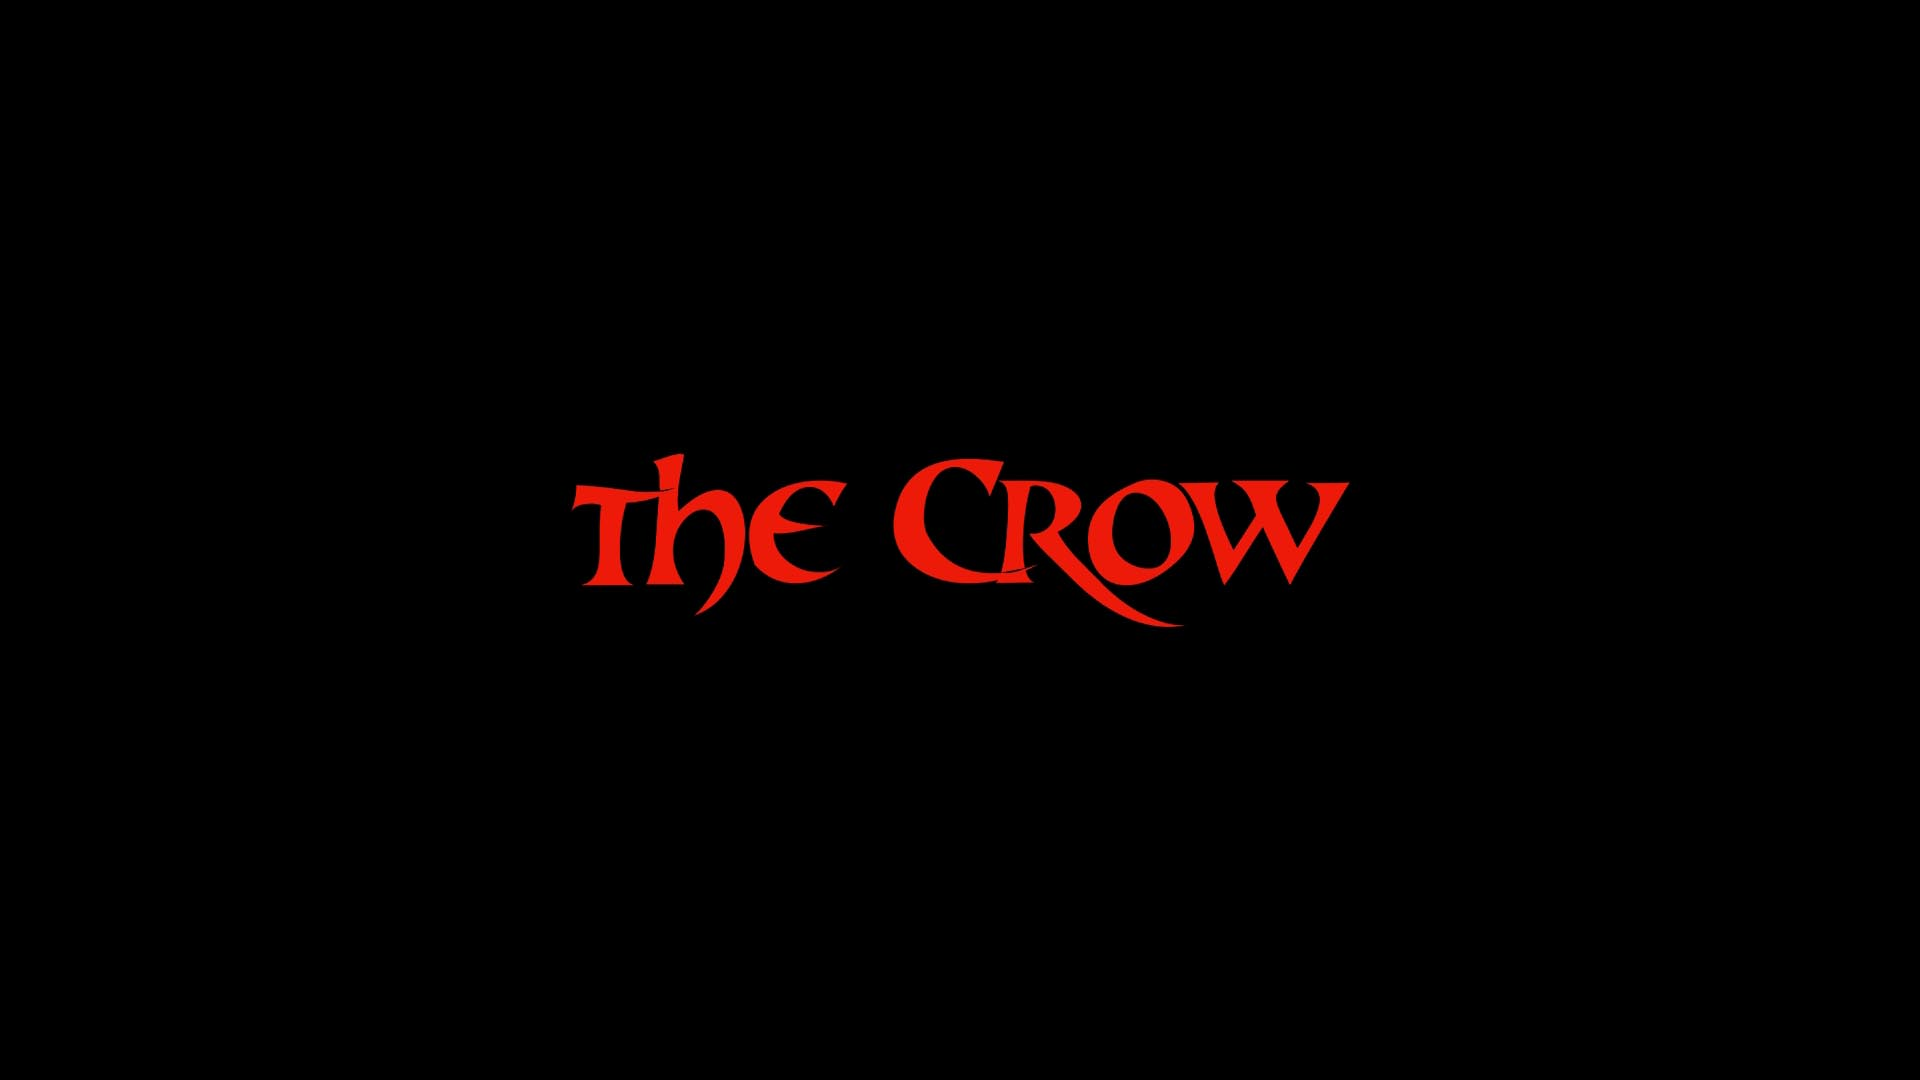 The Crow Computer Wallpapers, Desktop Backgrounds ...